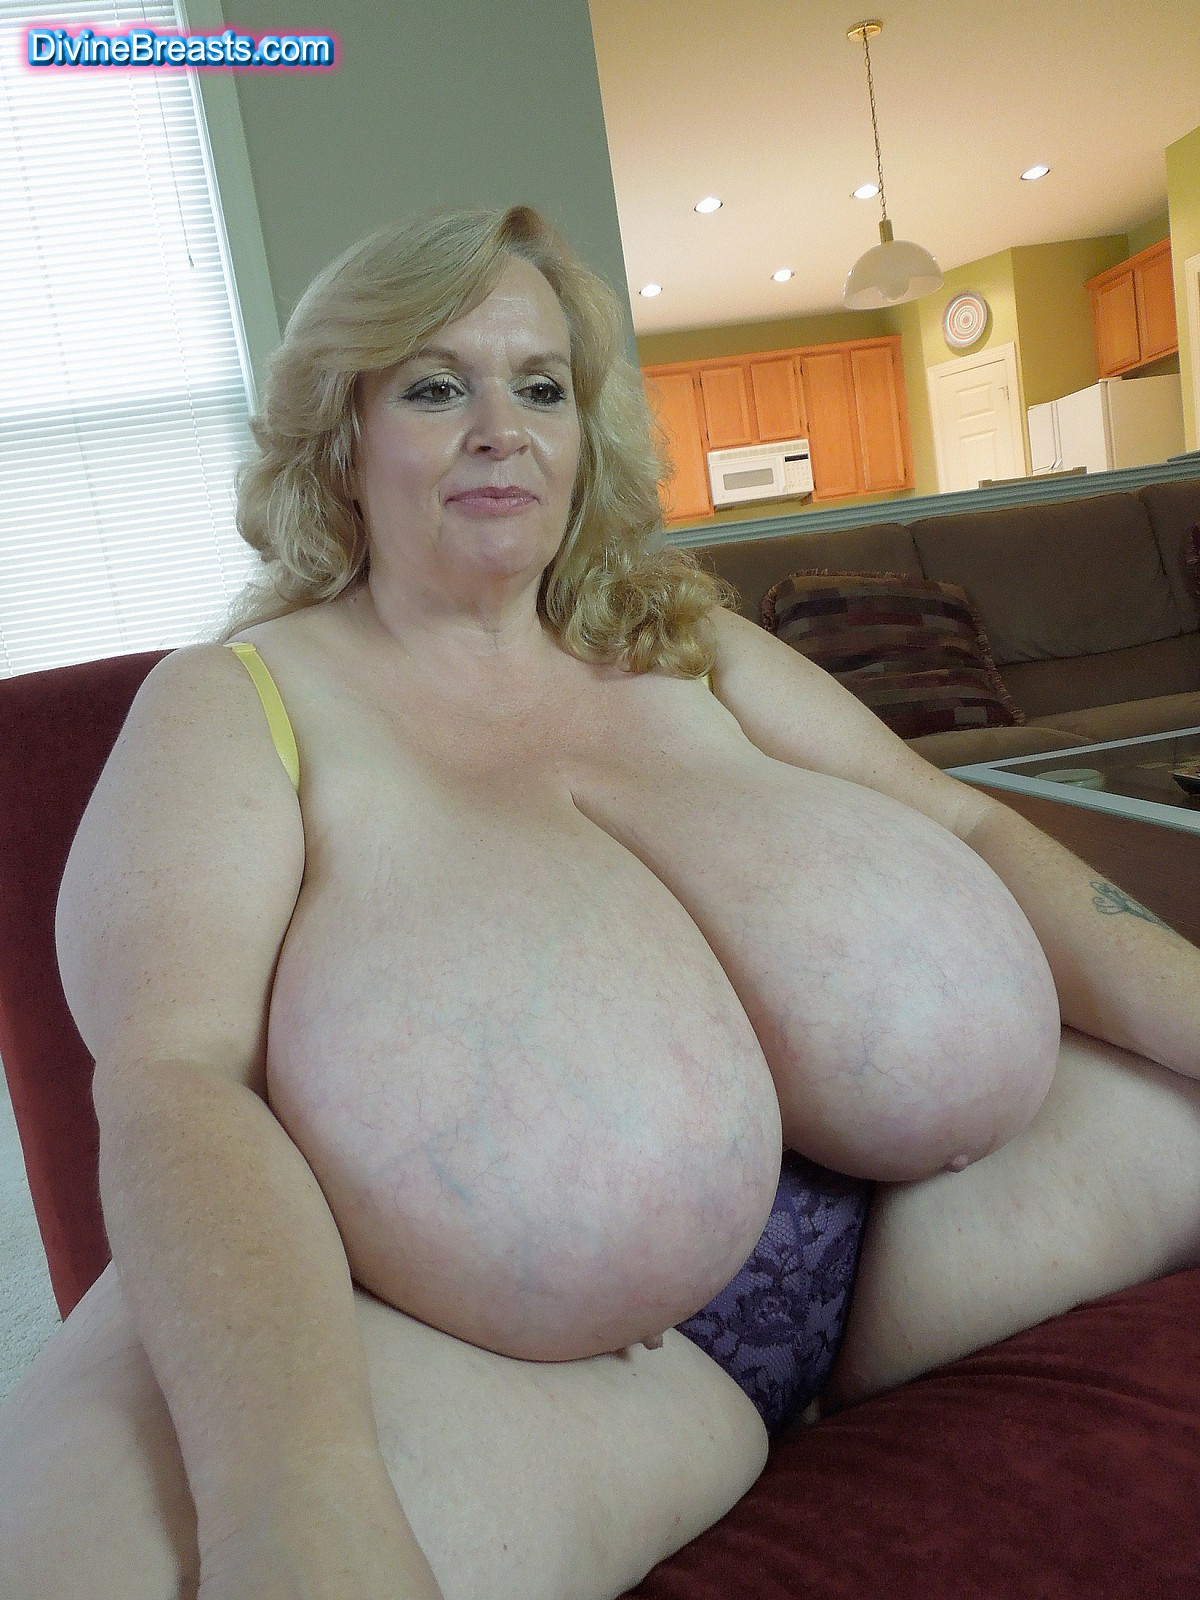 Old women huge breasts agree